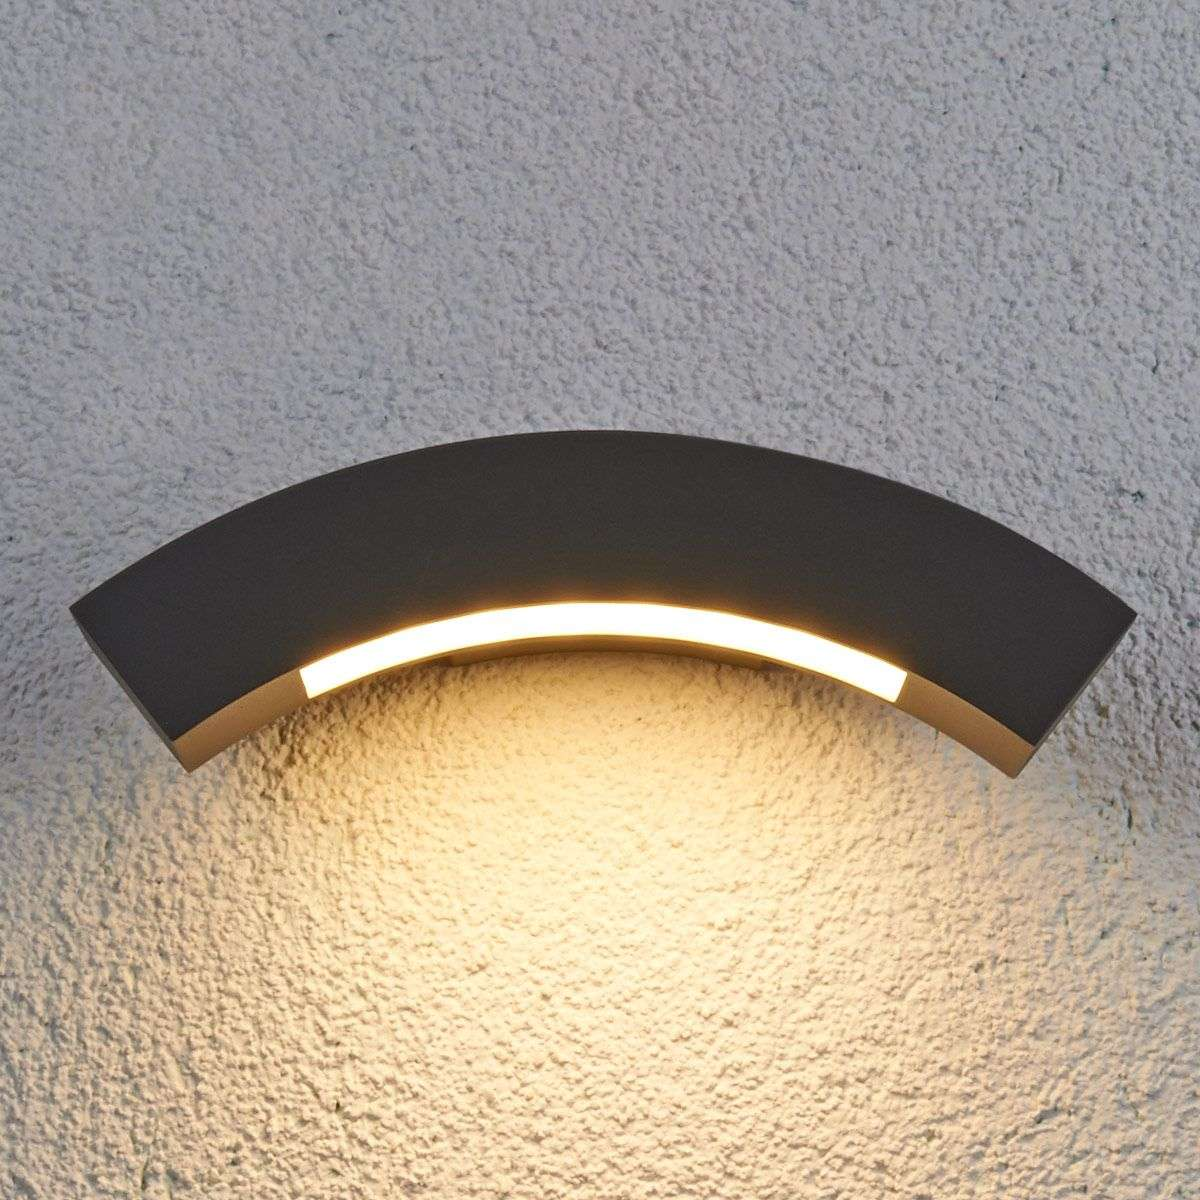 Lennik curved led exterior wall lamp lights lennik curved led exterior wall lamp mozeypictures Image collections